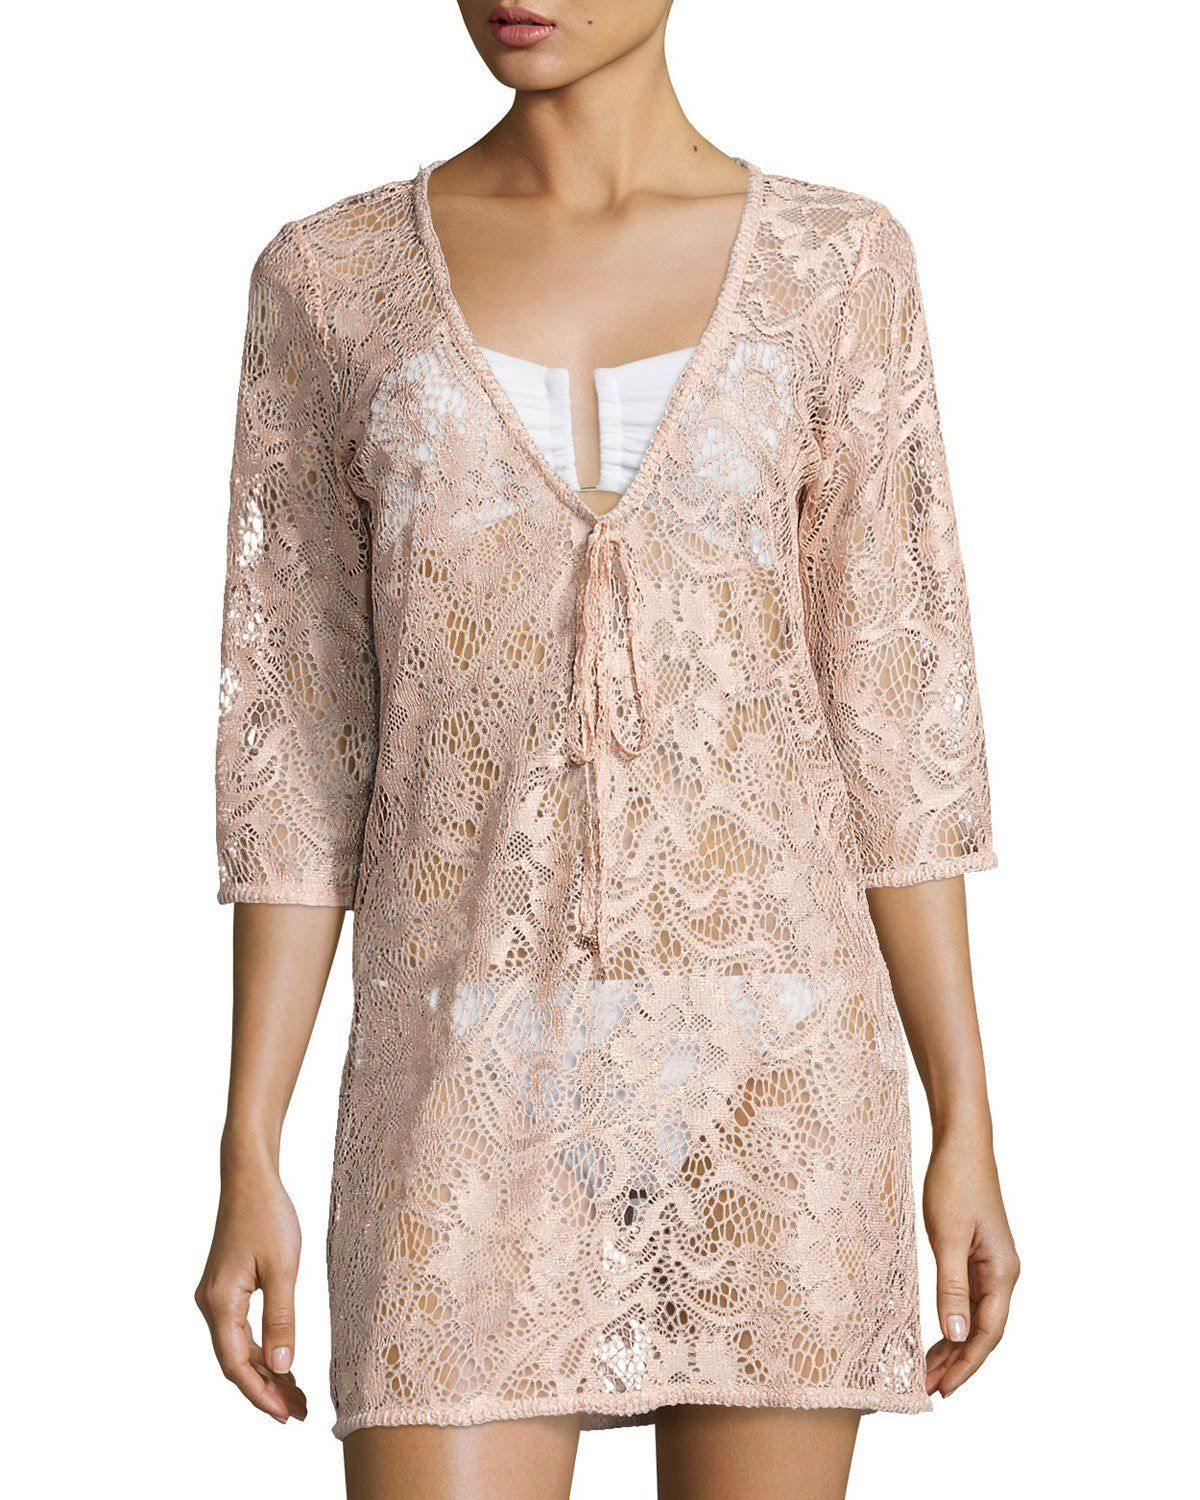 Venus Sheer Lace Coverup Tunic, Pink